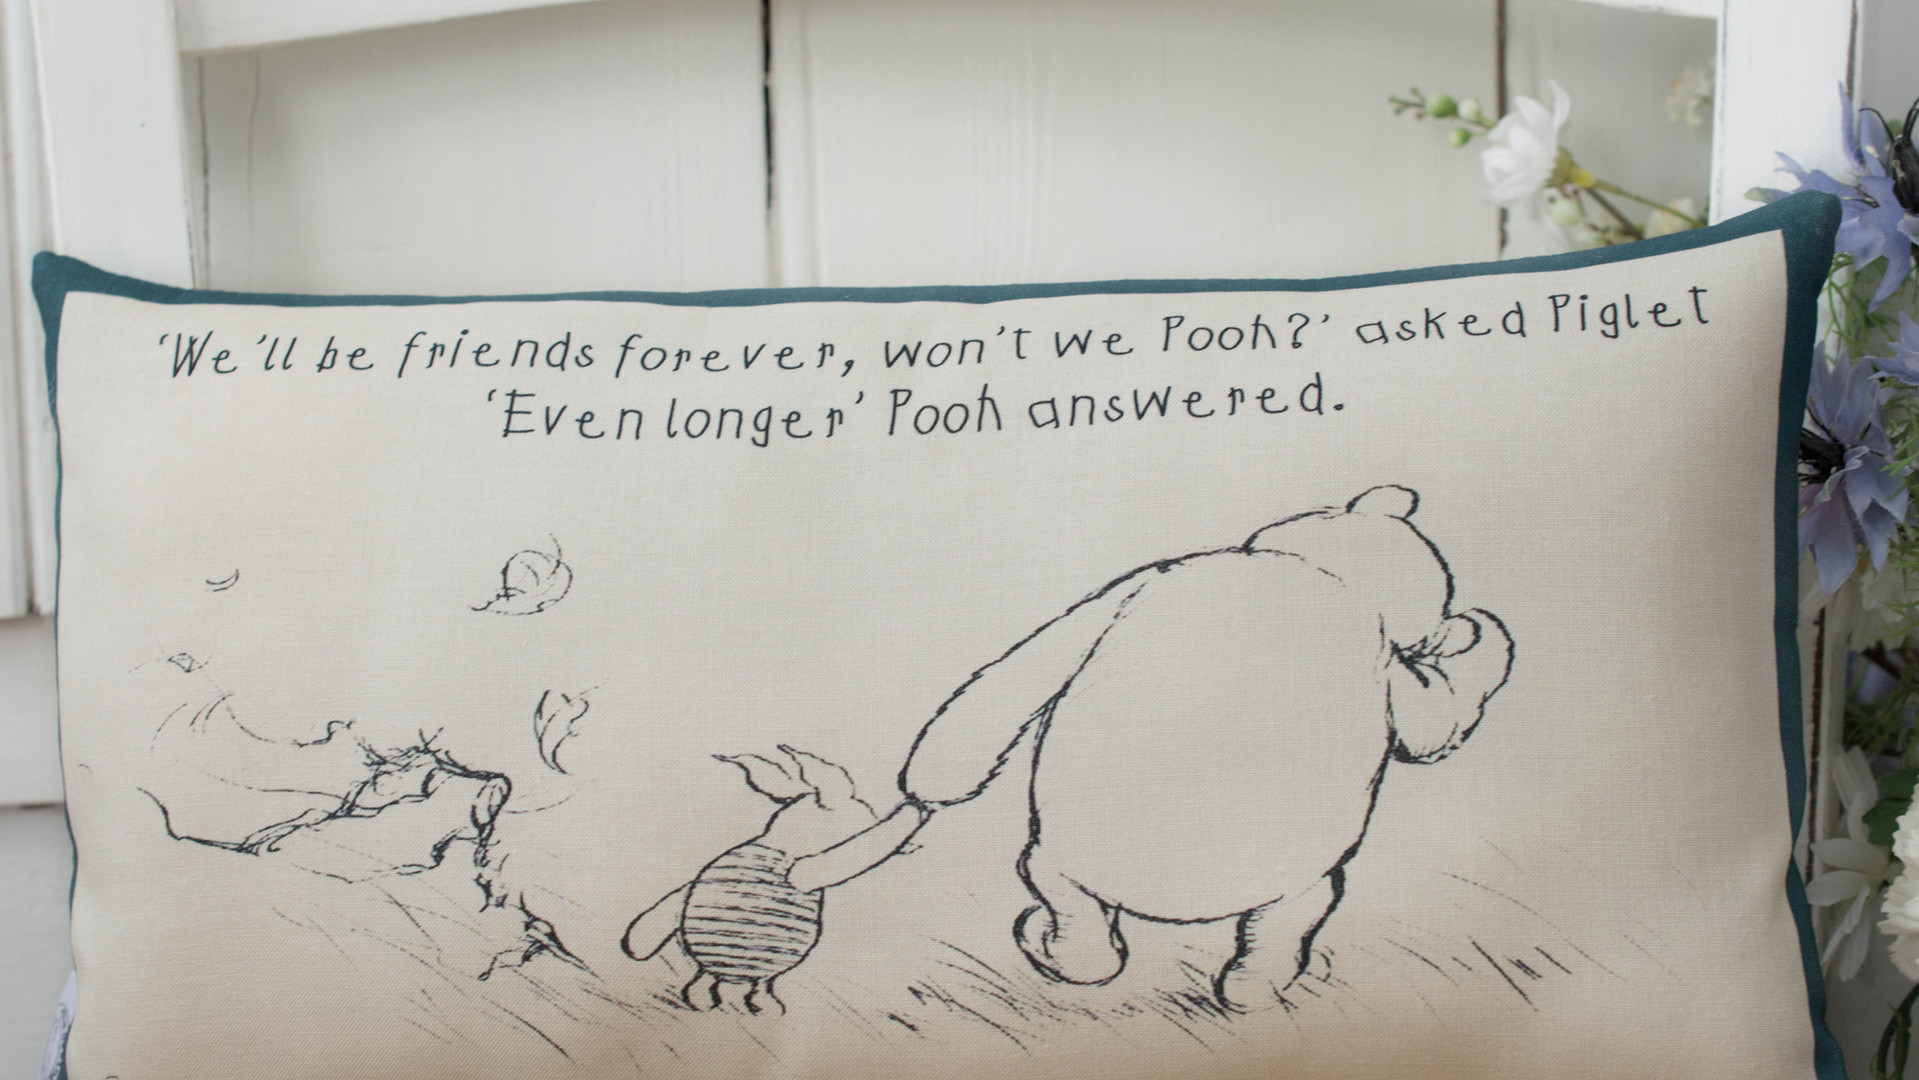 Pooh Friends Forever Long.jpg